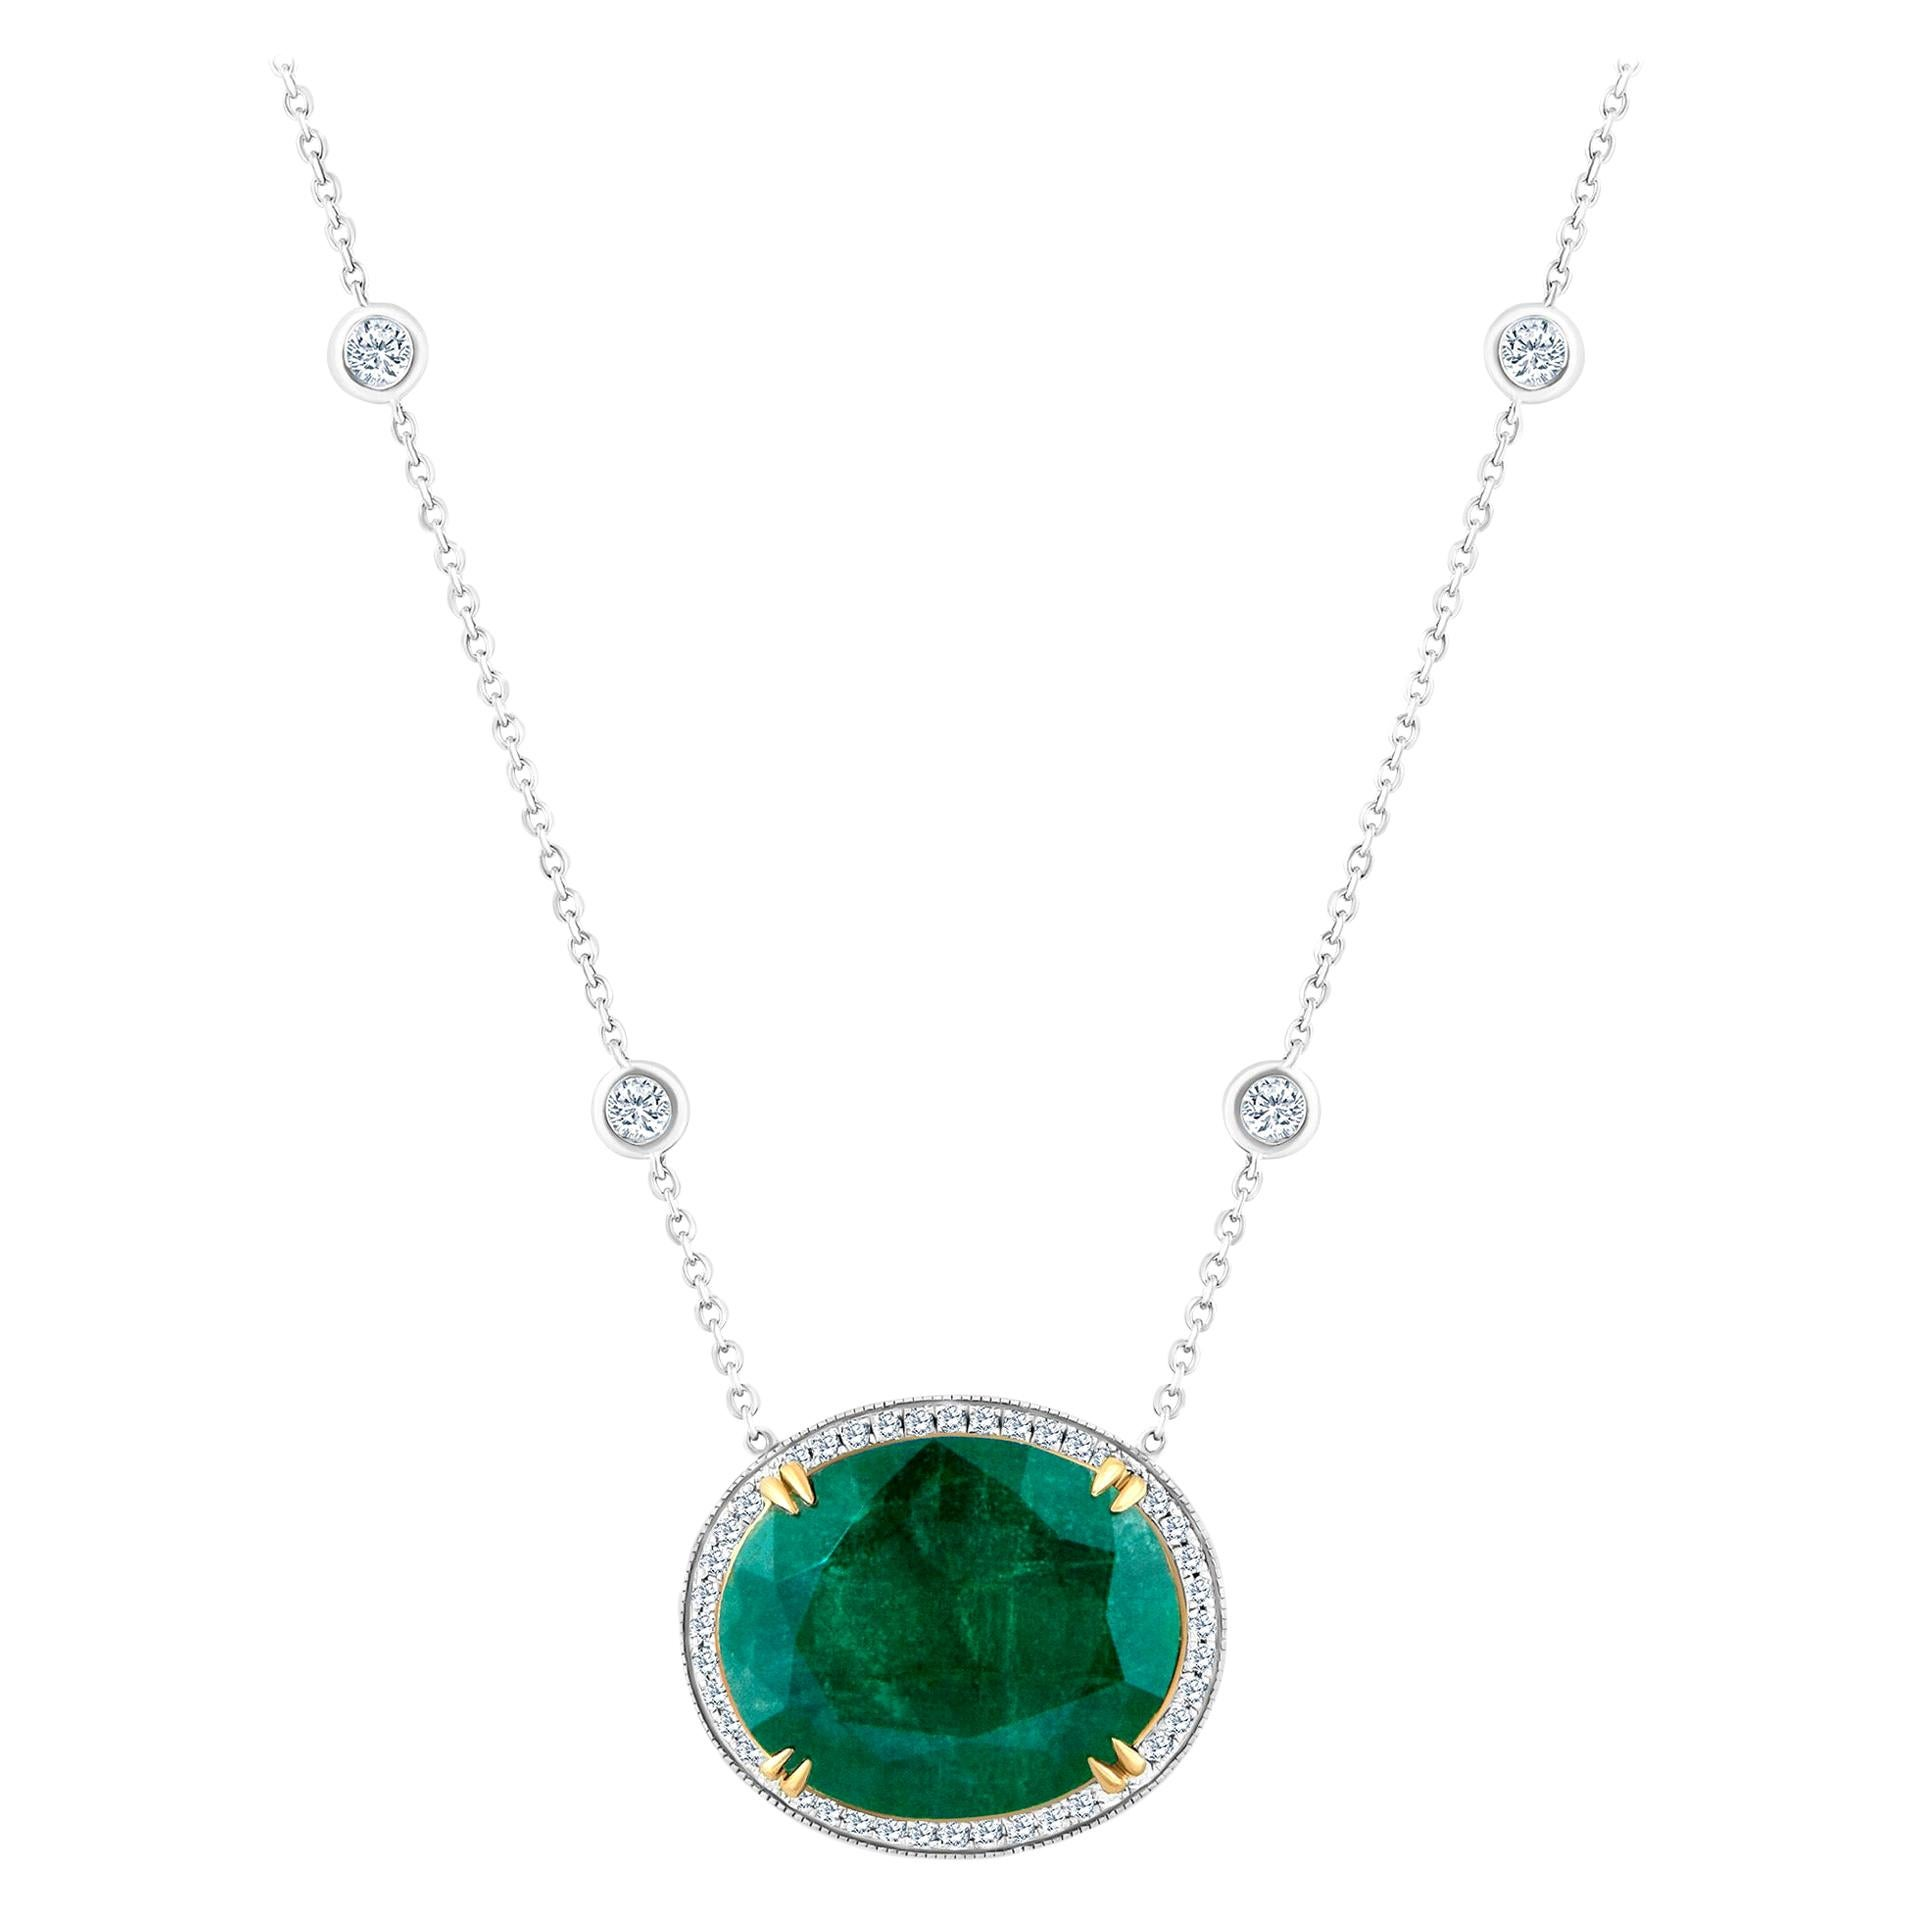 Emilio Jewelry GIA Certified 23.24 Carat Genuine Emerald Diamond Necklace